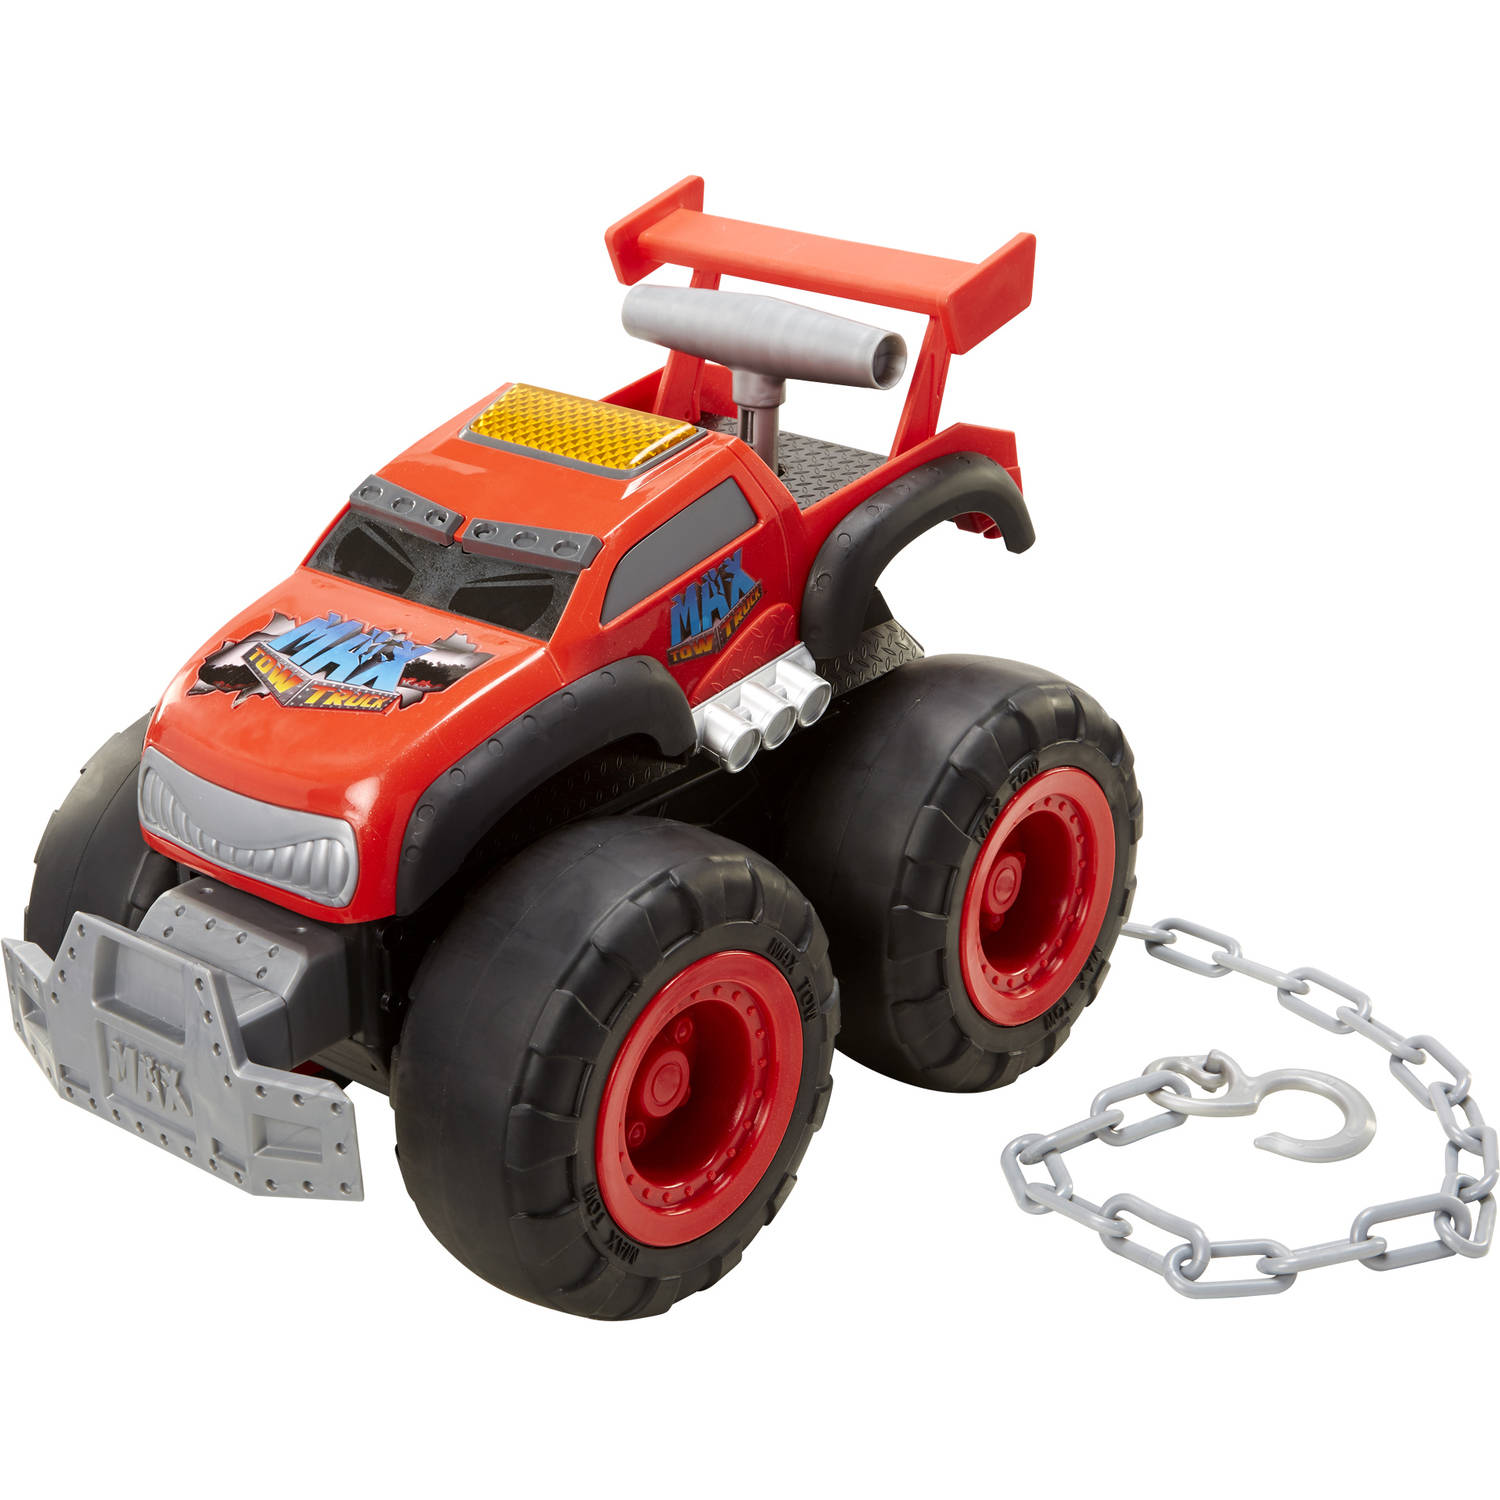 Max Tow Truck Turbo Speed, Red